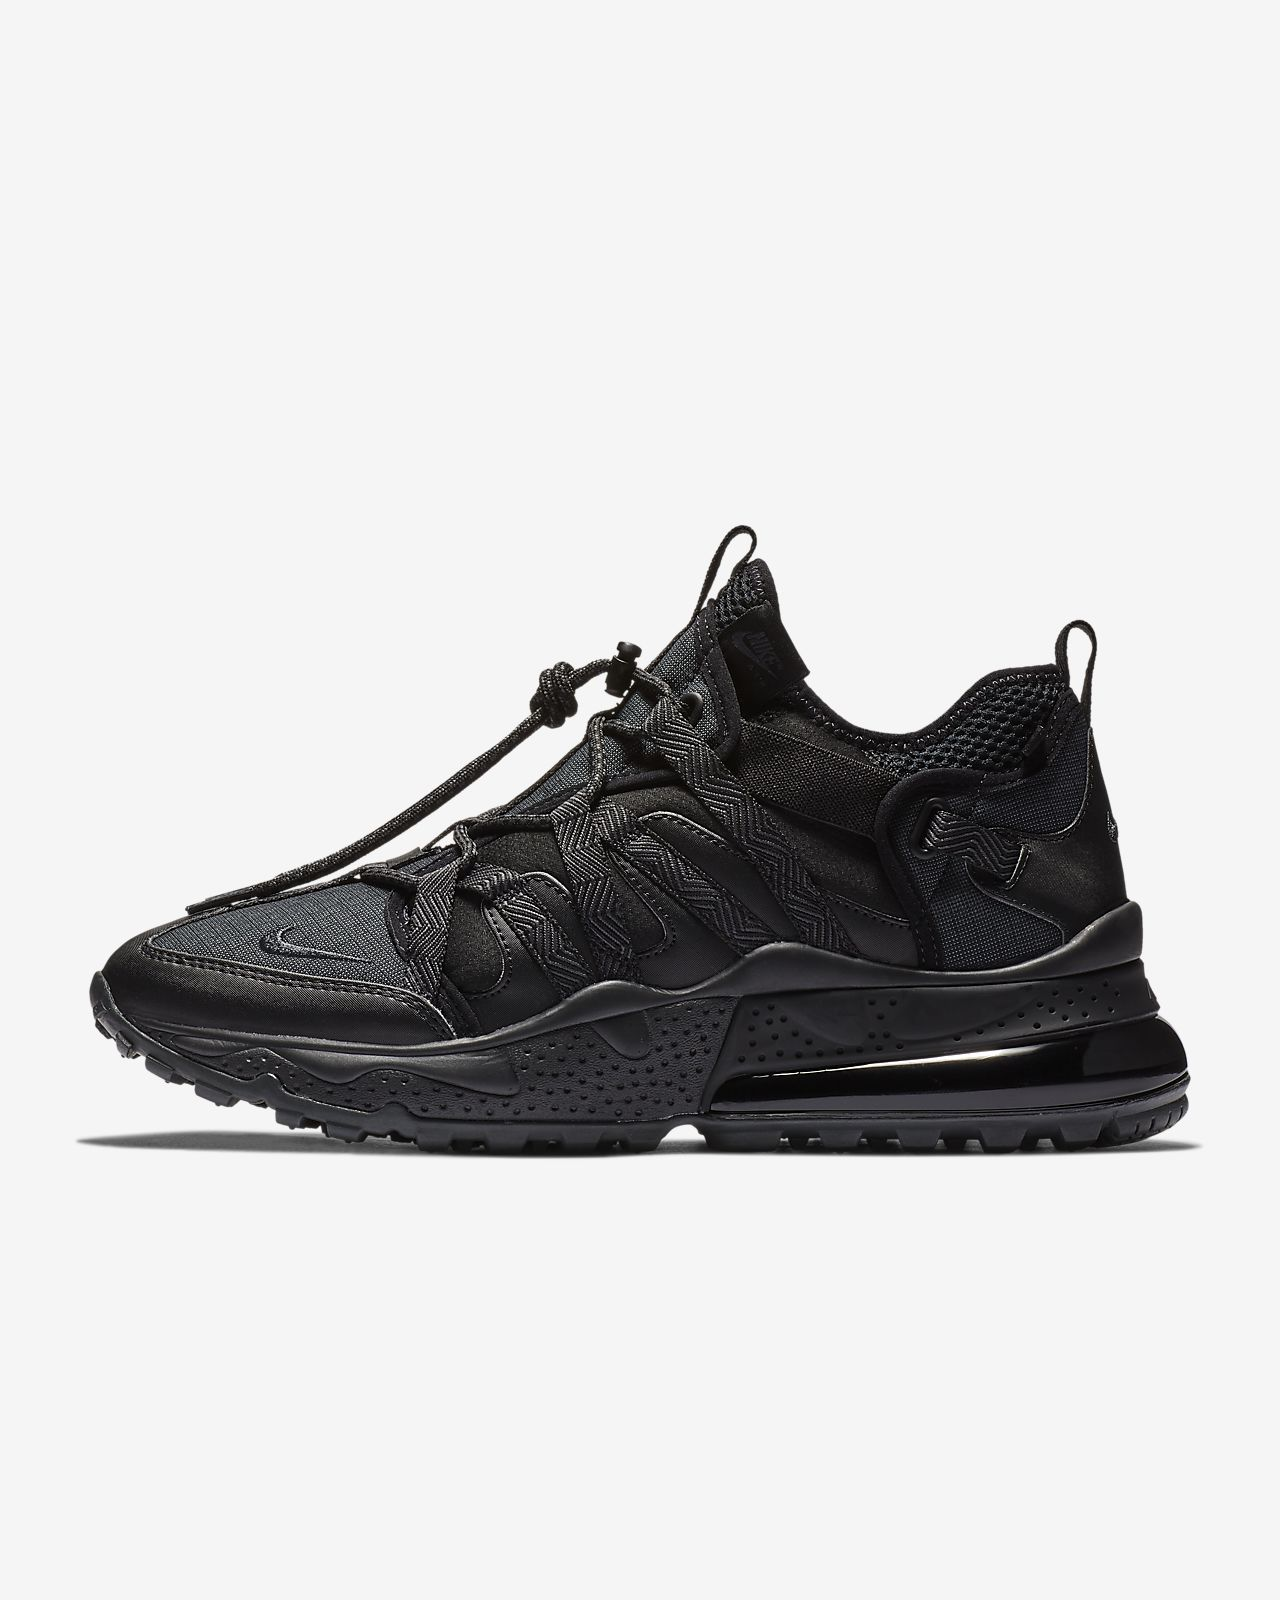 1dad8b272a9f Nike Air Max 270 Bowfin Men s Shoe. Nike.com